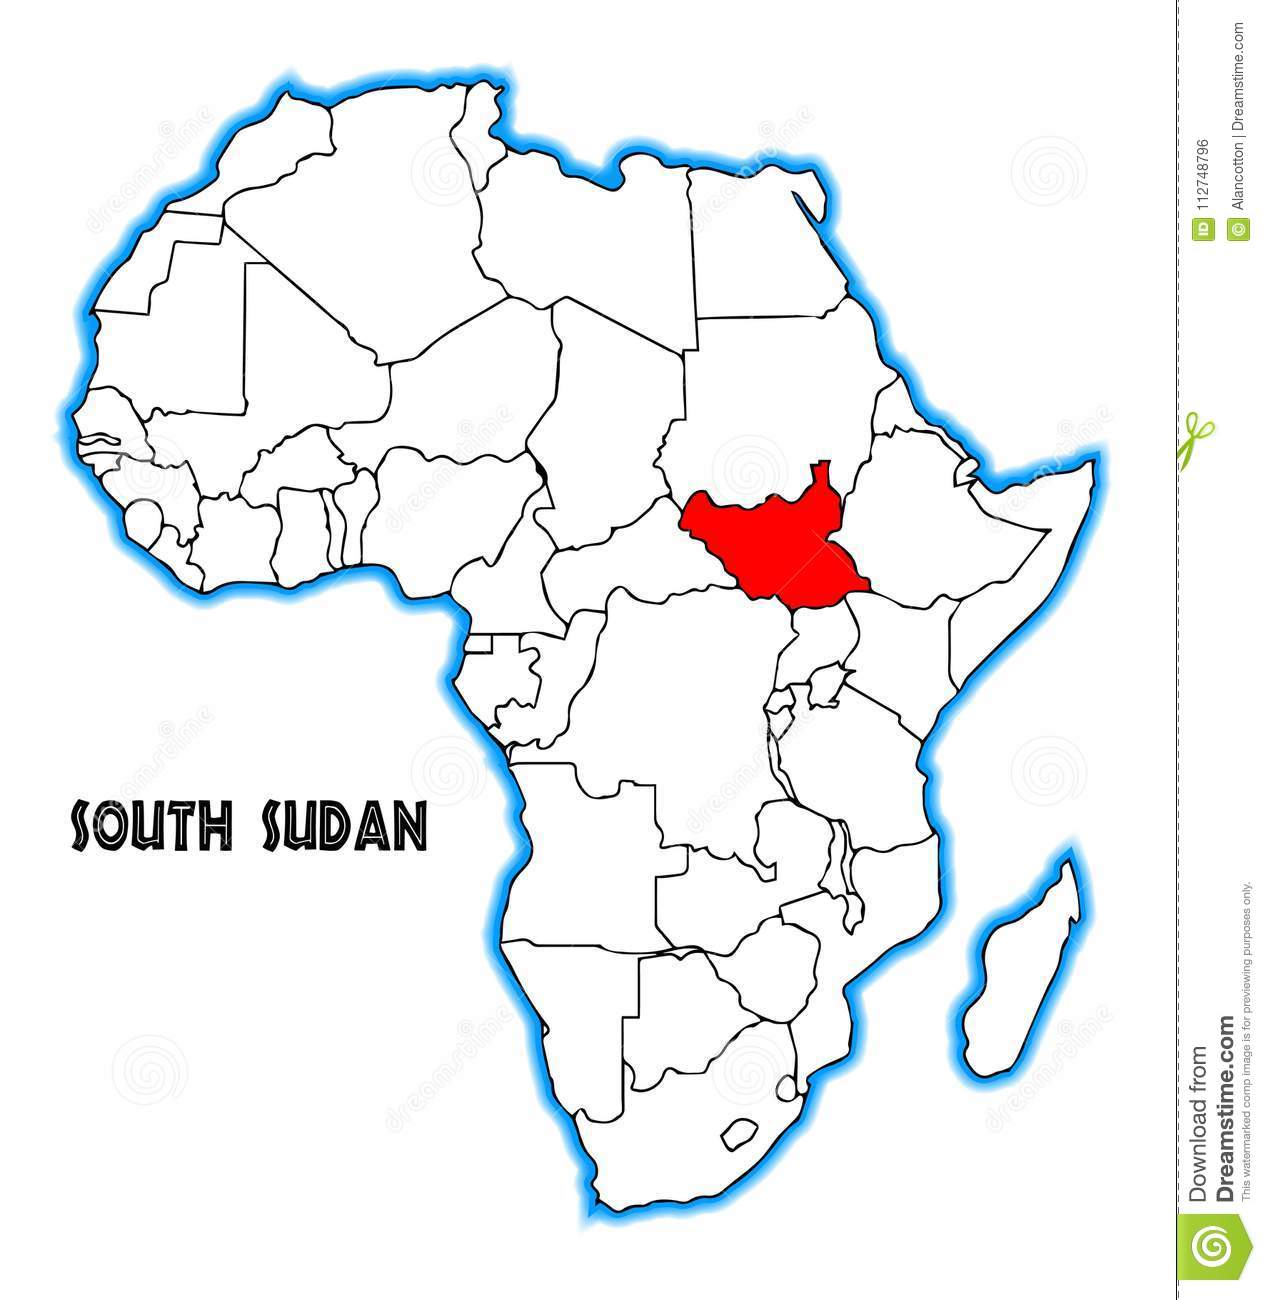 Africa Map With South Sudan.South Sudan Africa Map Stock Vector Illustration Of Vector